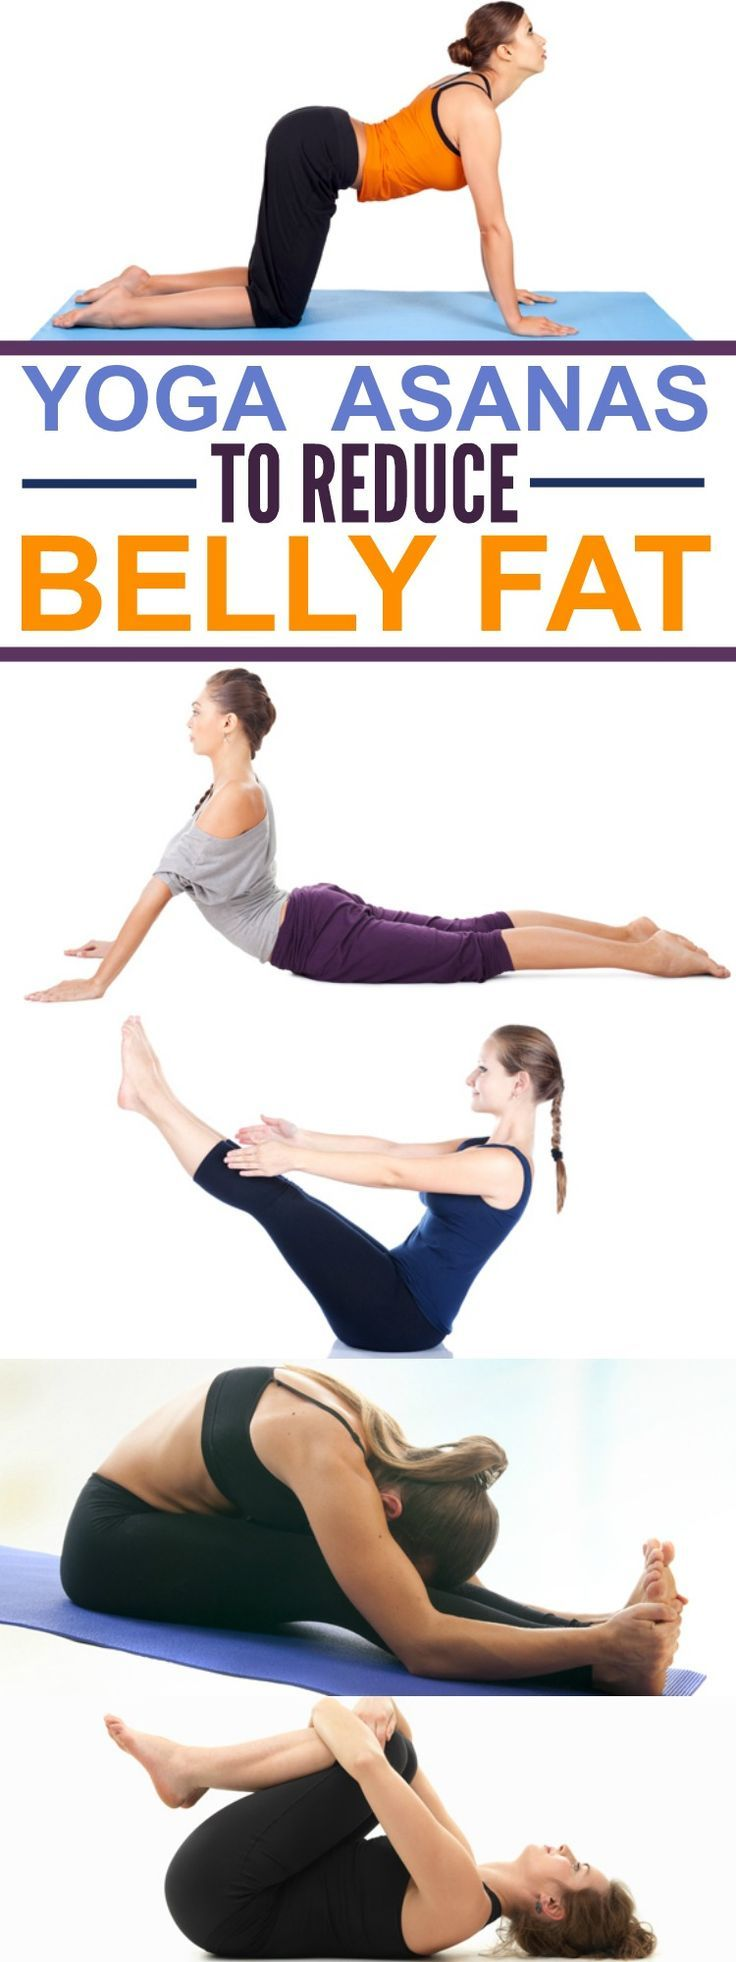 Yoga : Yoga asanas help greatly in burning the belly fat & other fat deposits in the body. Here are top 12 yoga asanas to reduce belly fat.  find more relevant stuff: victoriajohnson.wordpress.com